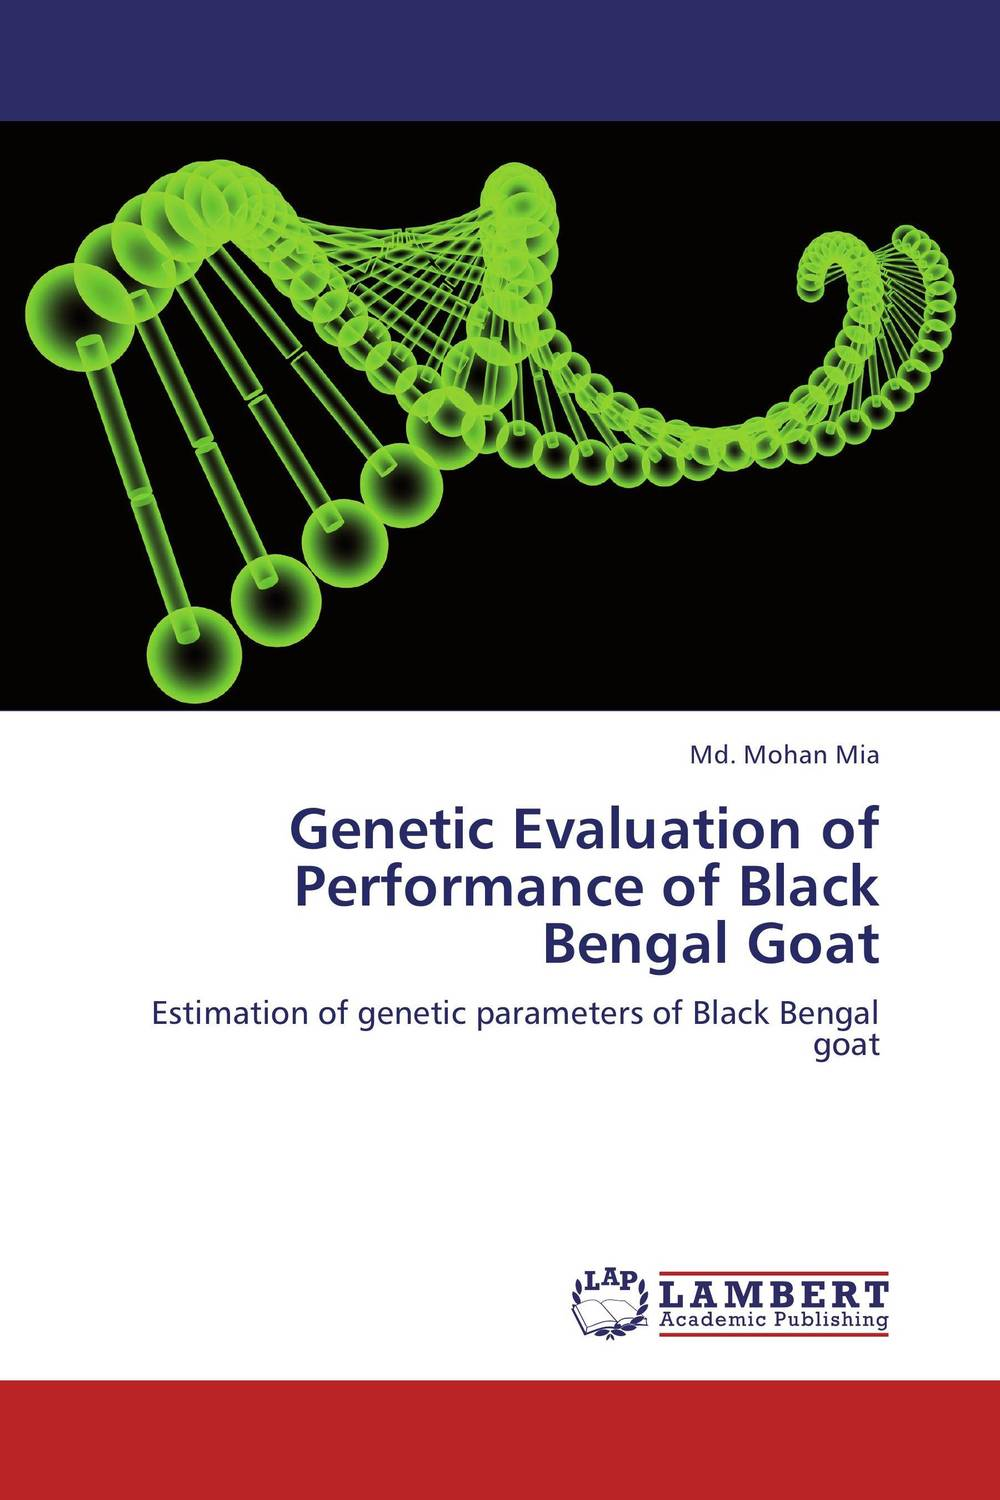 Genetic Evaluation of Performance of Black Bengal Goat performance evaluation of disparity for stereo images